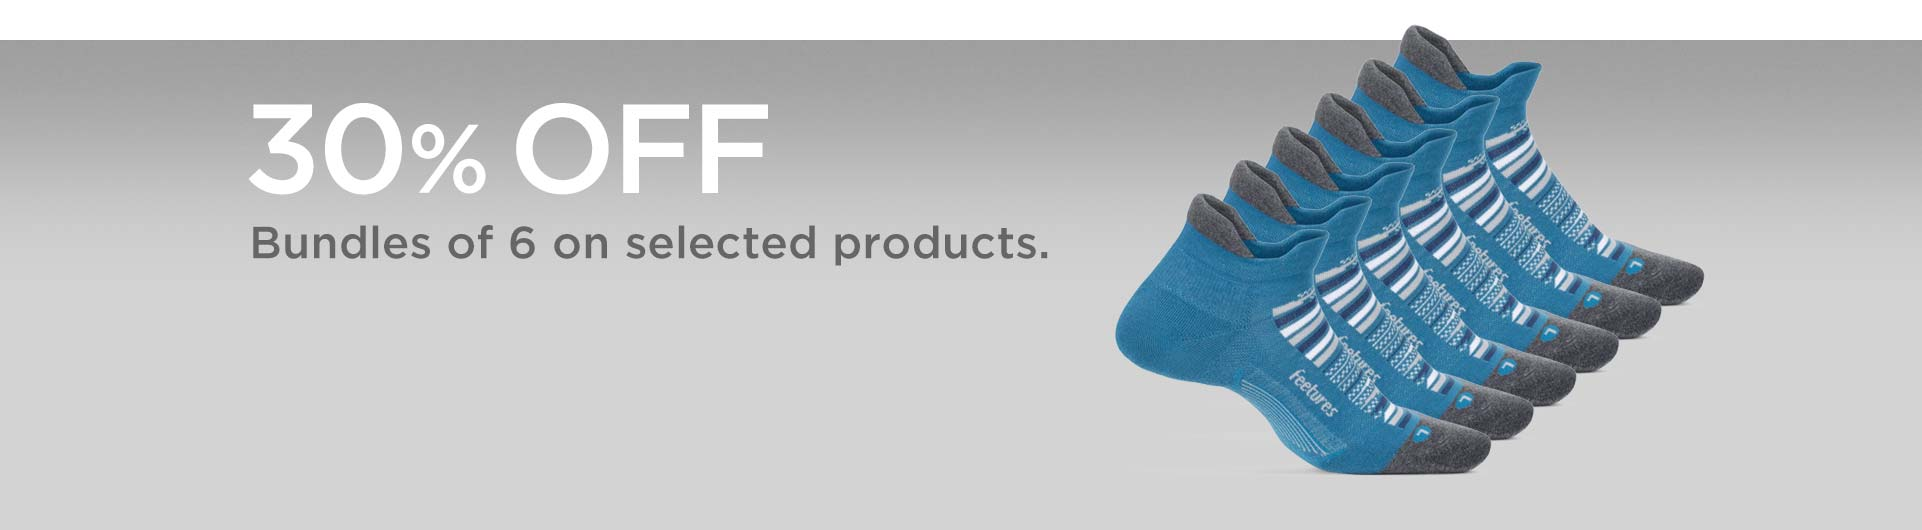 30% off bundles of 6 socks on selected products.